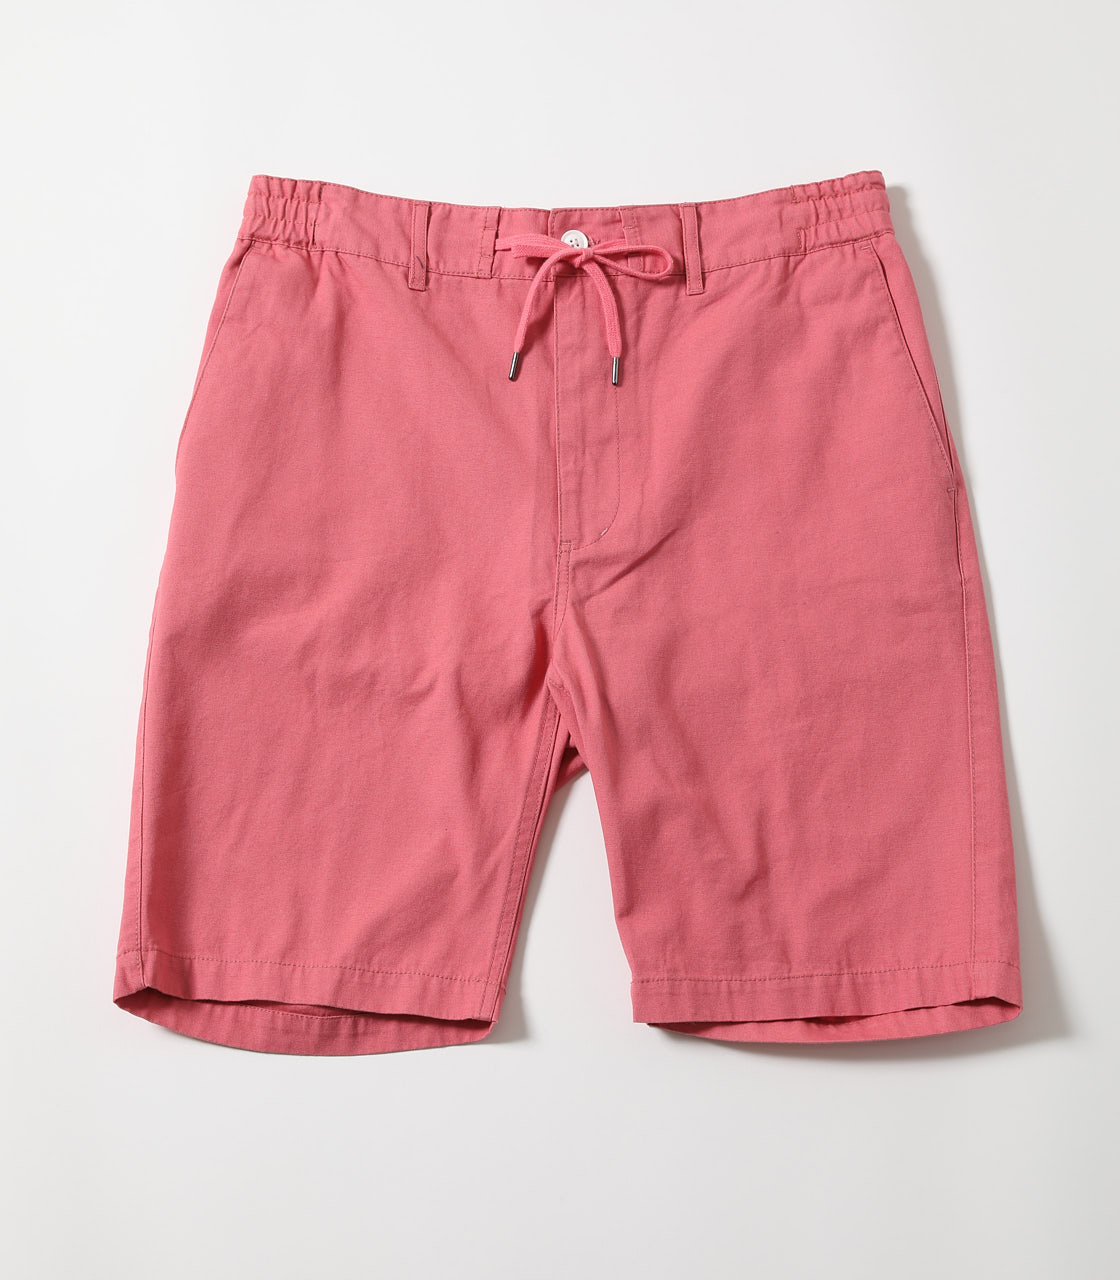 TWILL COLOR SHORTS 詳細画像 PNK 1